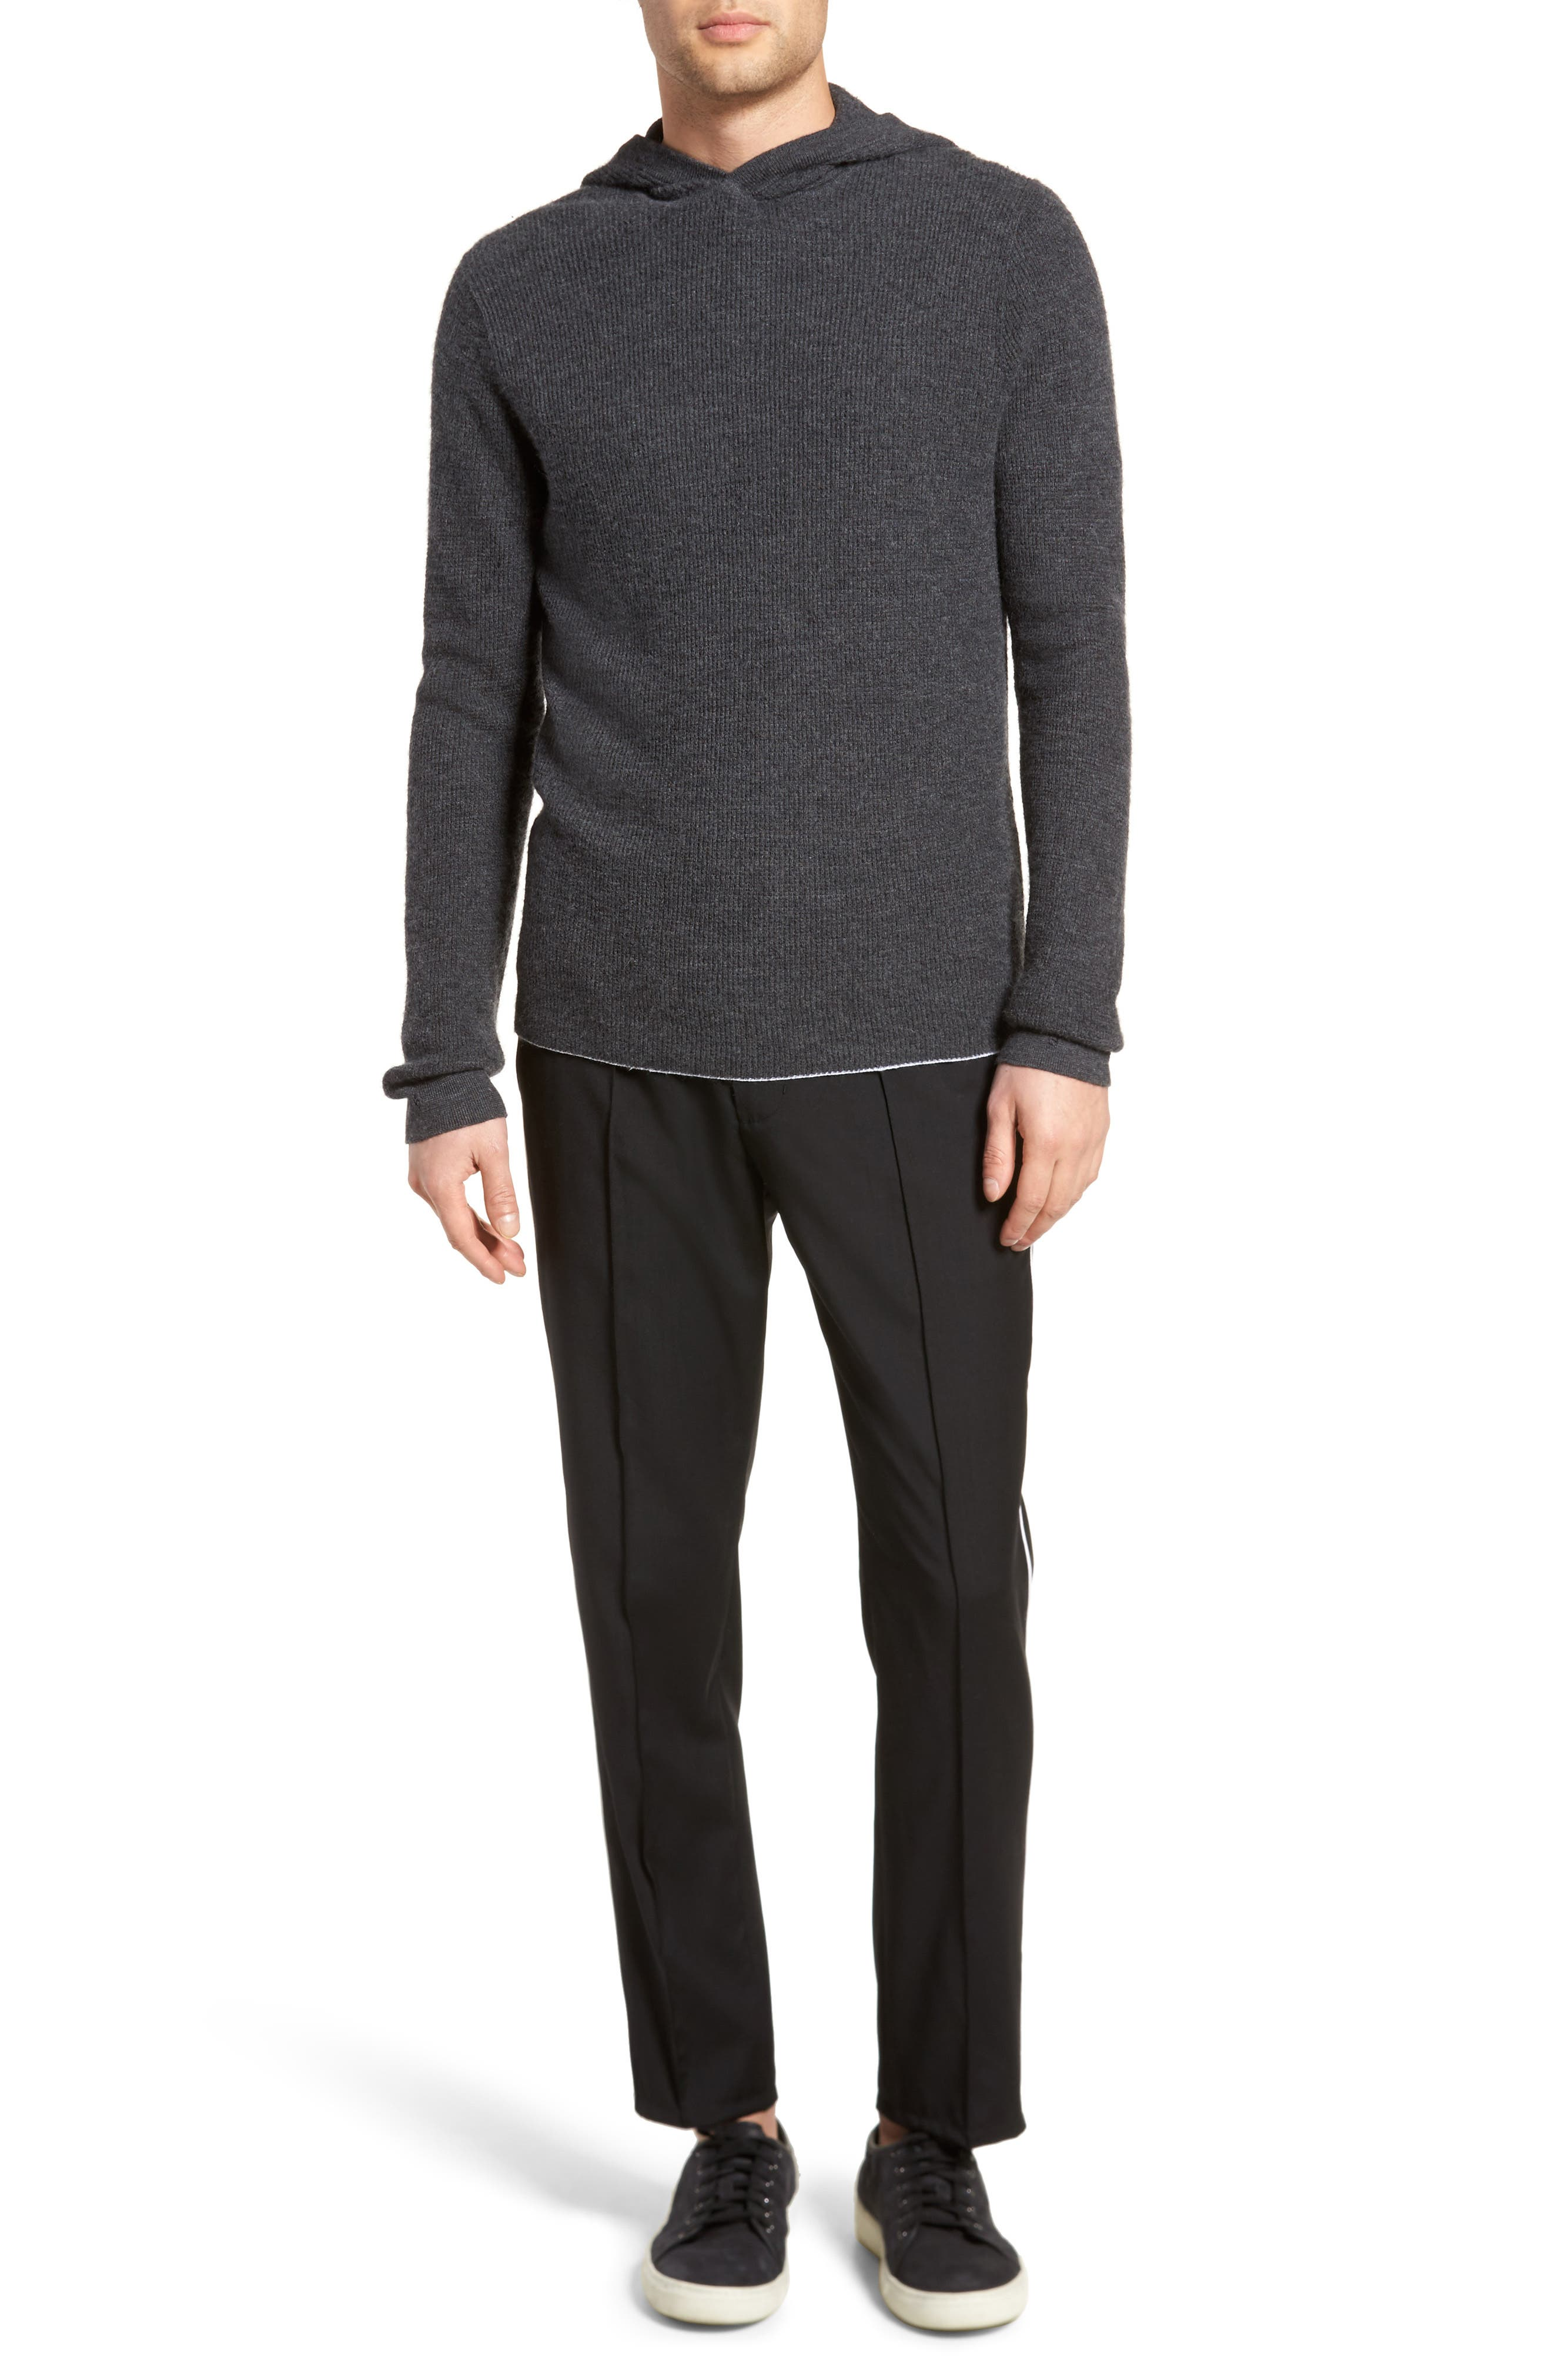 Thermal Knit Cashmere Hooded Sweater,                             Alternate thumbnail 7, color,                             020